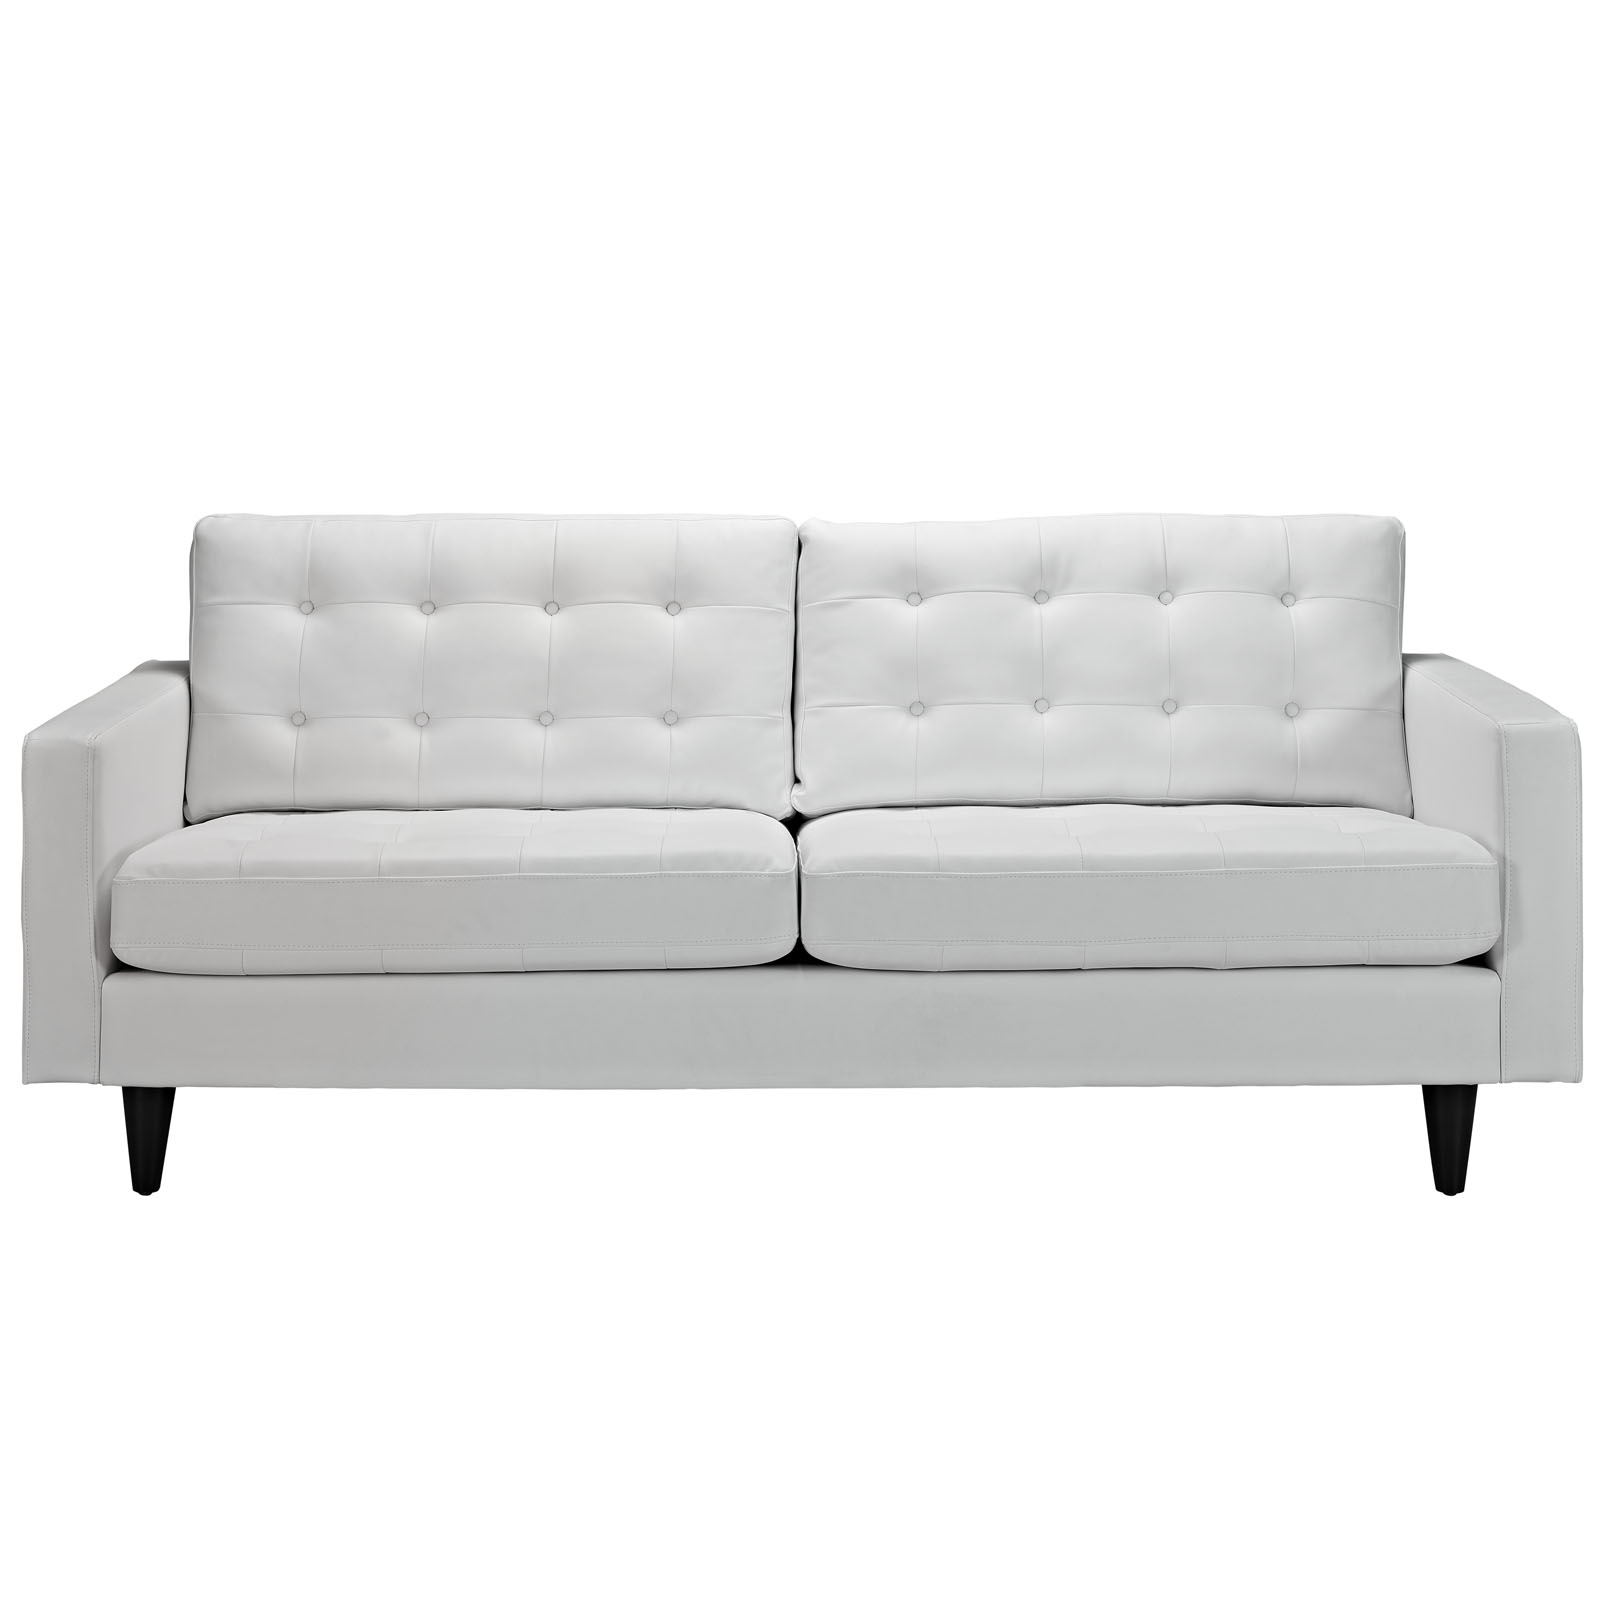 Modern Contemporary Living Room Leather Sofa White